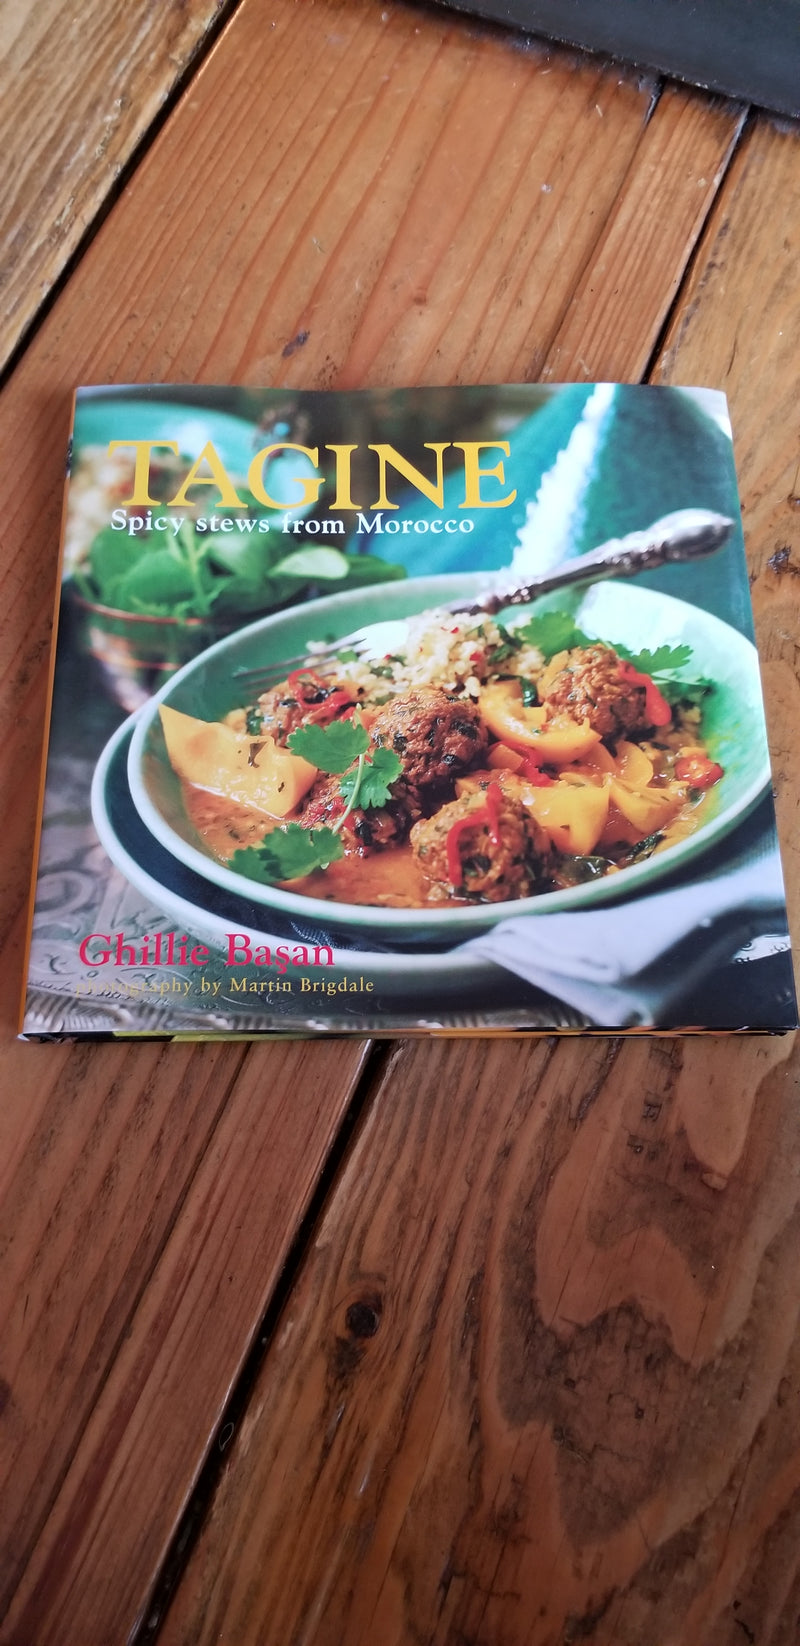 Book tagine from Morocco